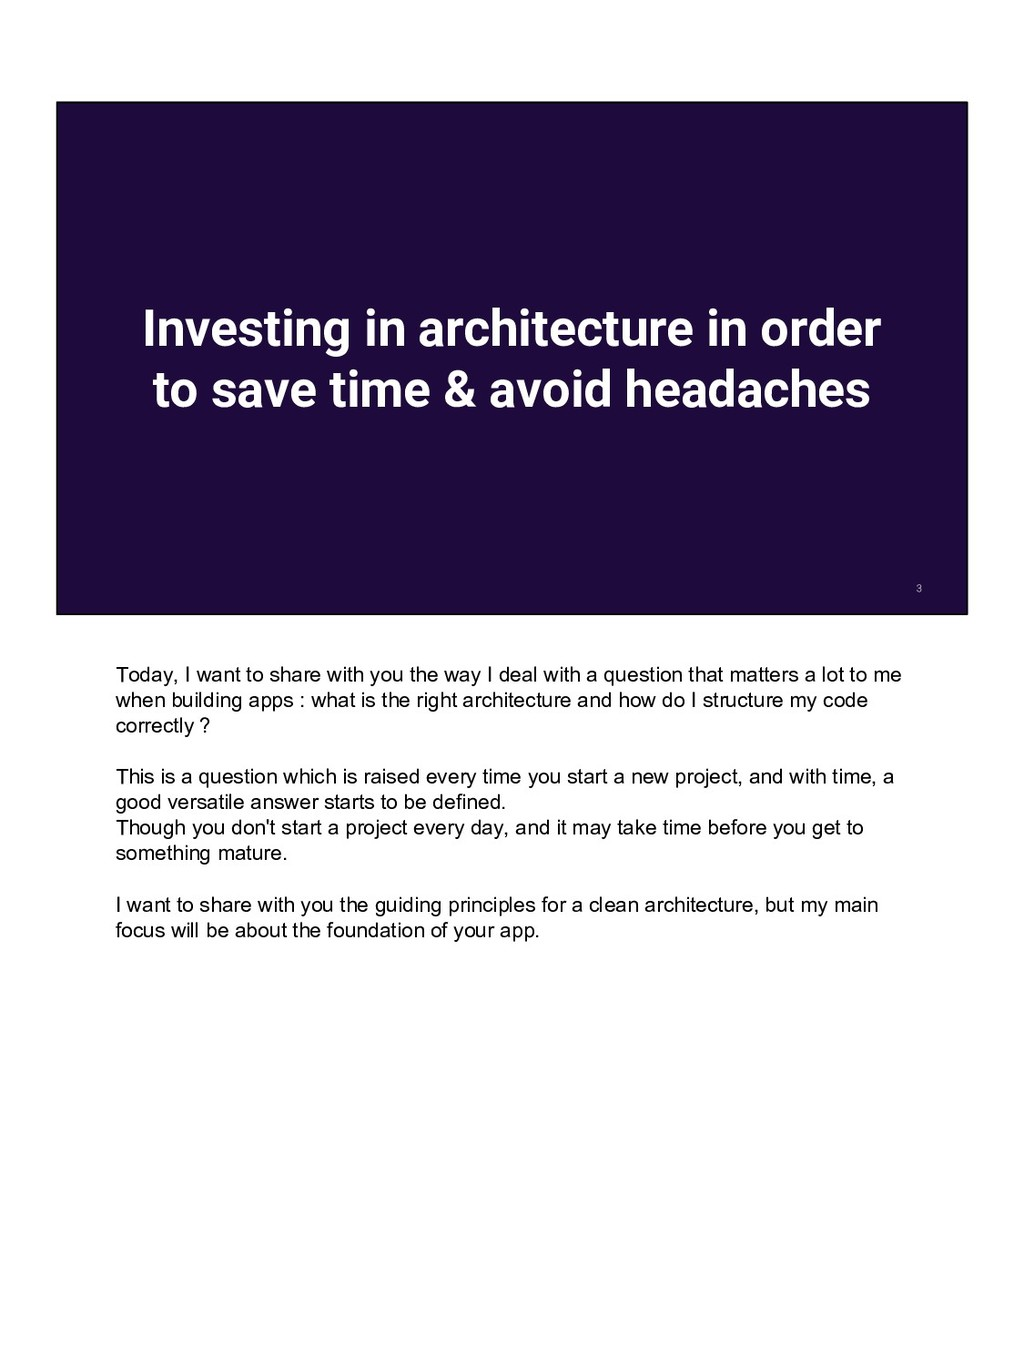 Investing in architecture in order to save time...